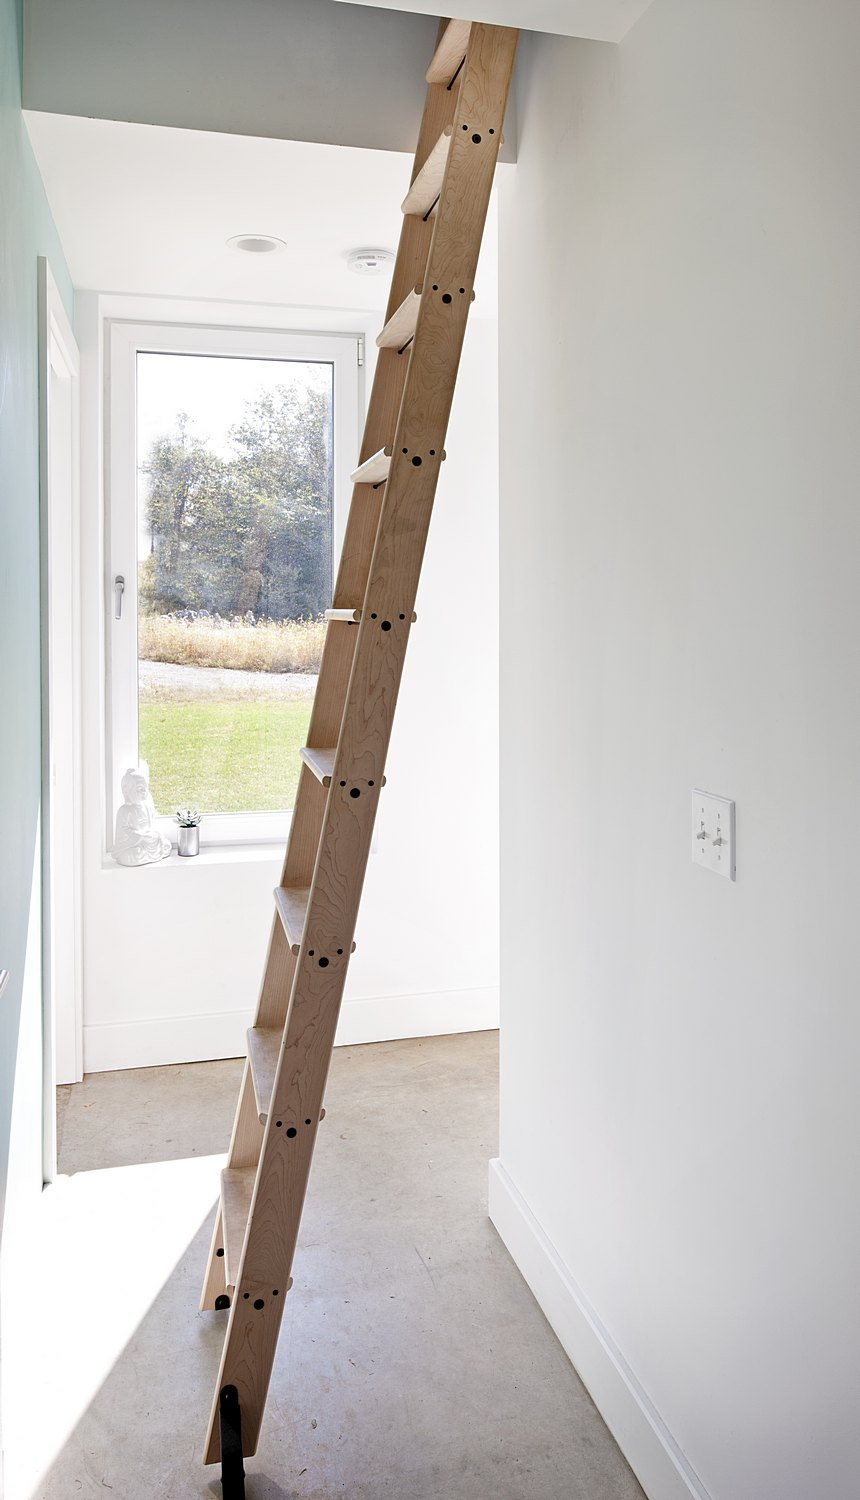 Ladder to loft area